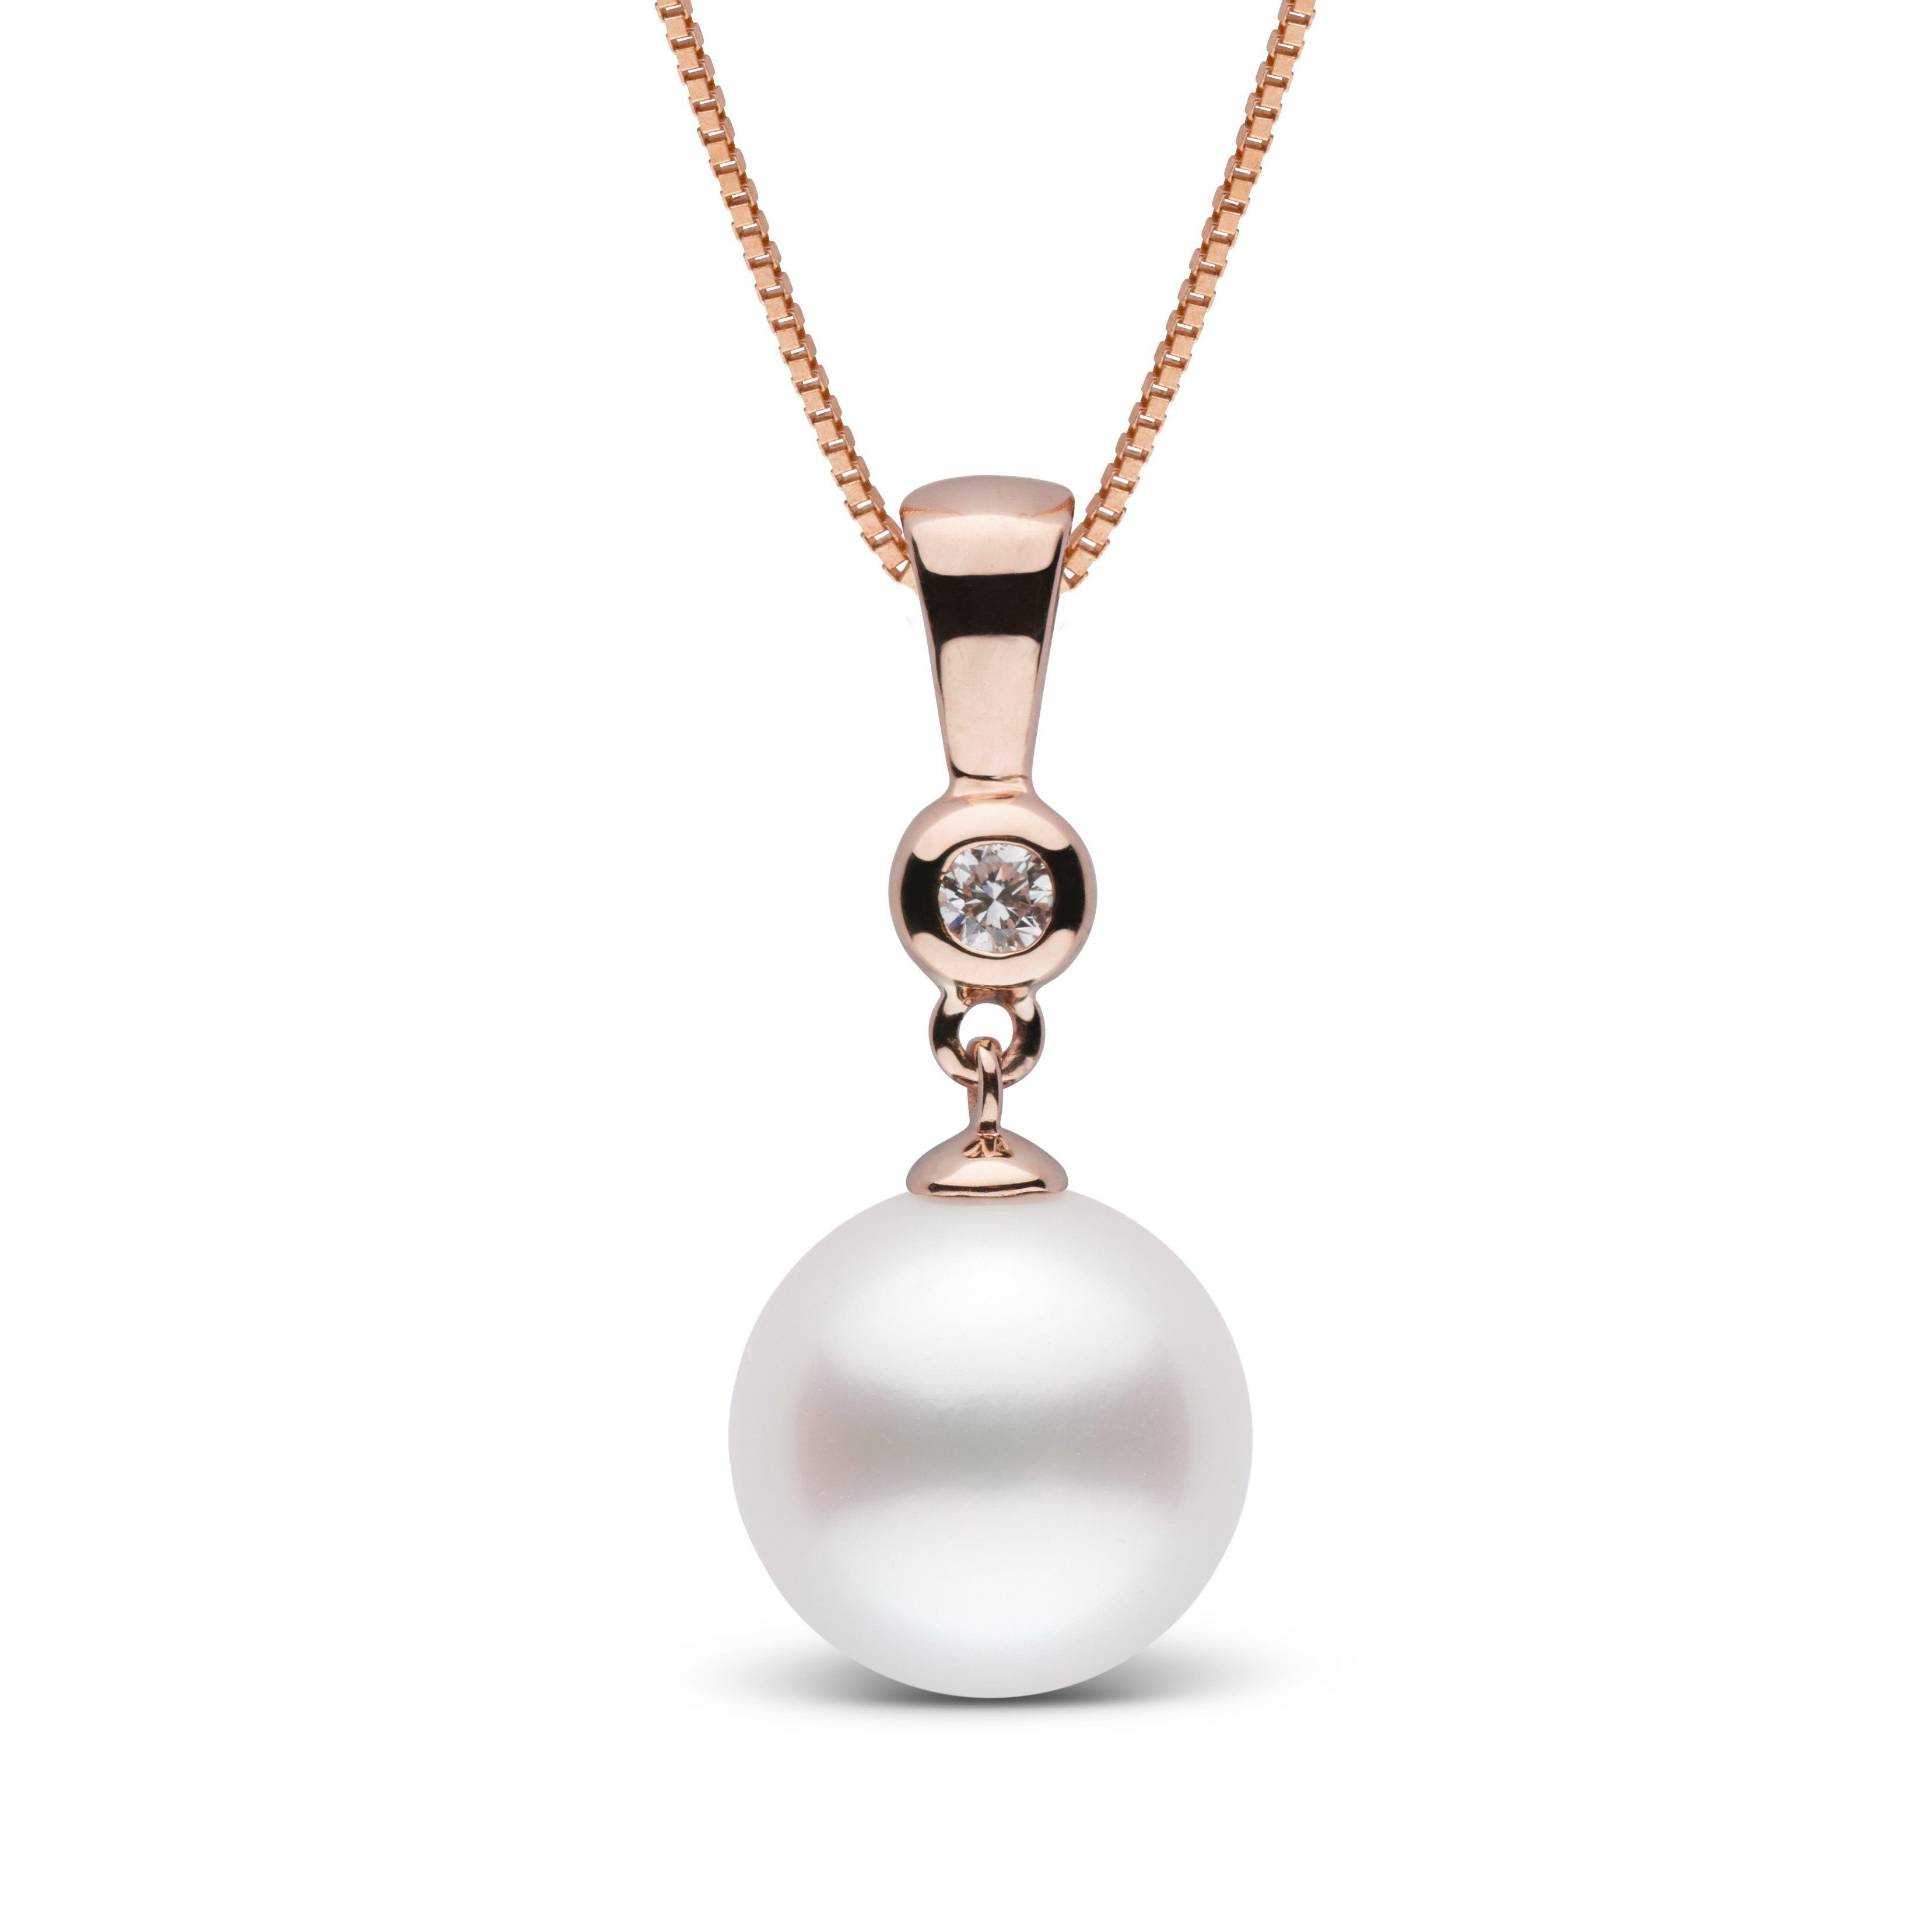 Romantic Collection White 10.0-11.0 mm South Sea Pearl & Diamond Pendant